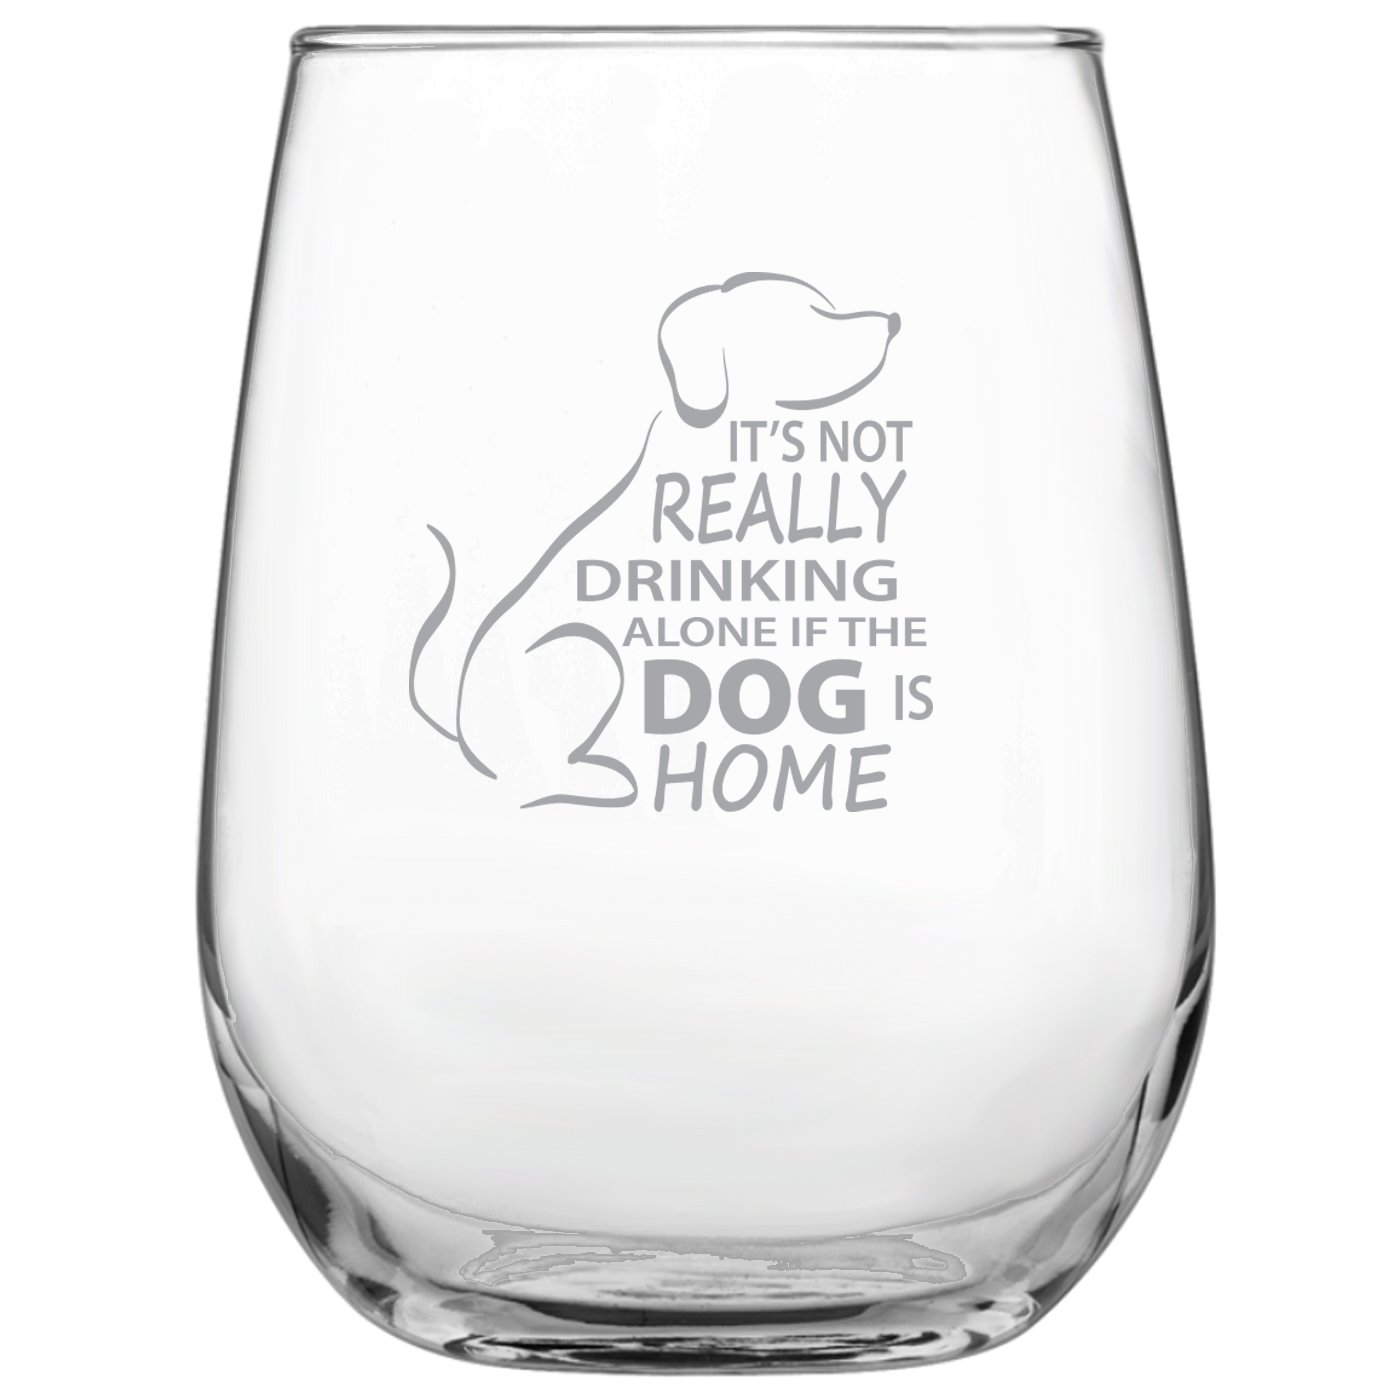 It's Not Really Drinking Alone if the Dog is Home Engraved 17oz Stemless Wine Glass - Dog Lover Gift • Present for Her • Present for Him • Birthday • Mother's Day • Father's Day